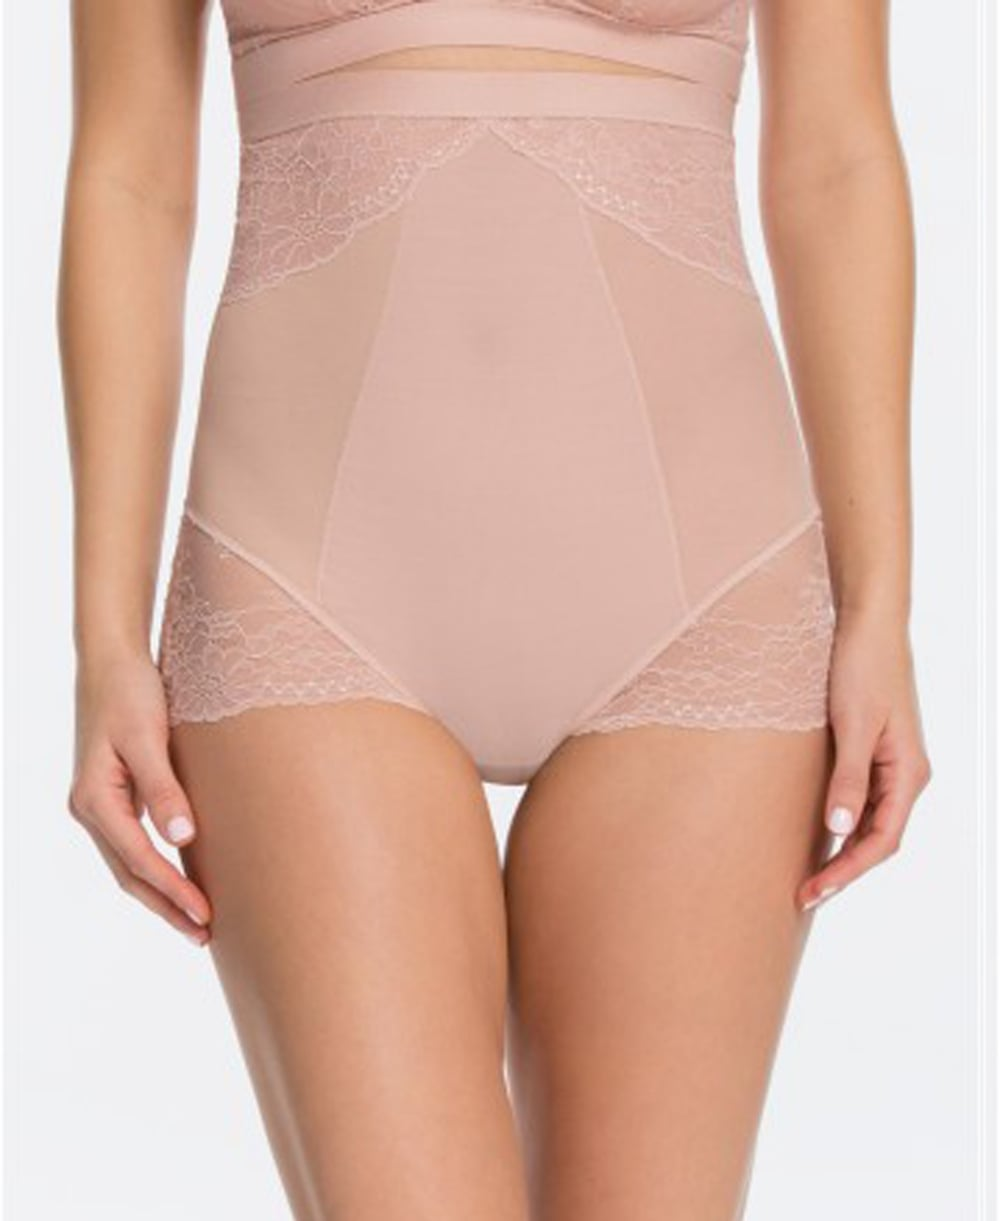 ea7178b8c122 Spanx Spotlight On Lace High-Waisted Brief - Shapewear from luxury-legs.com  UK